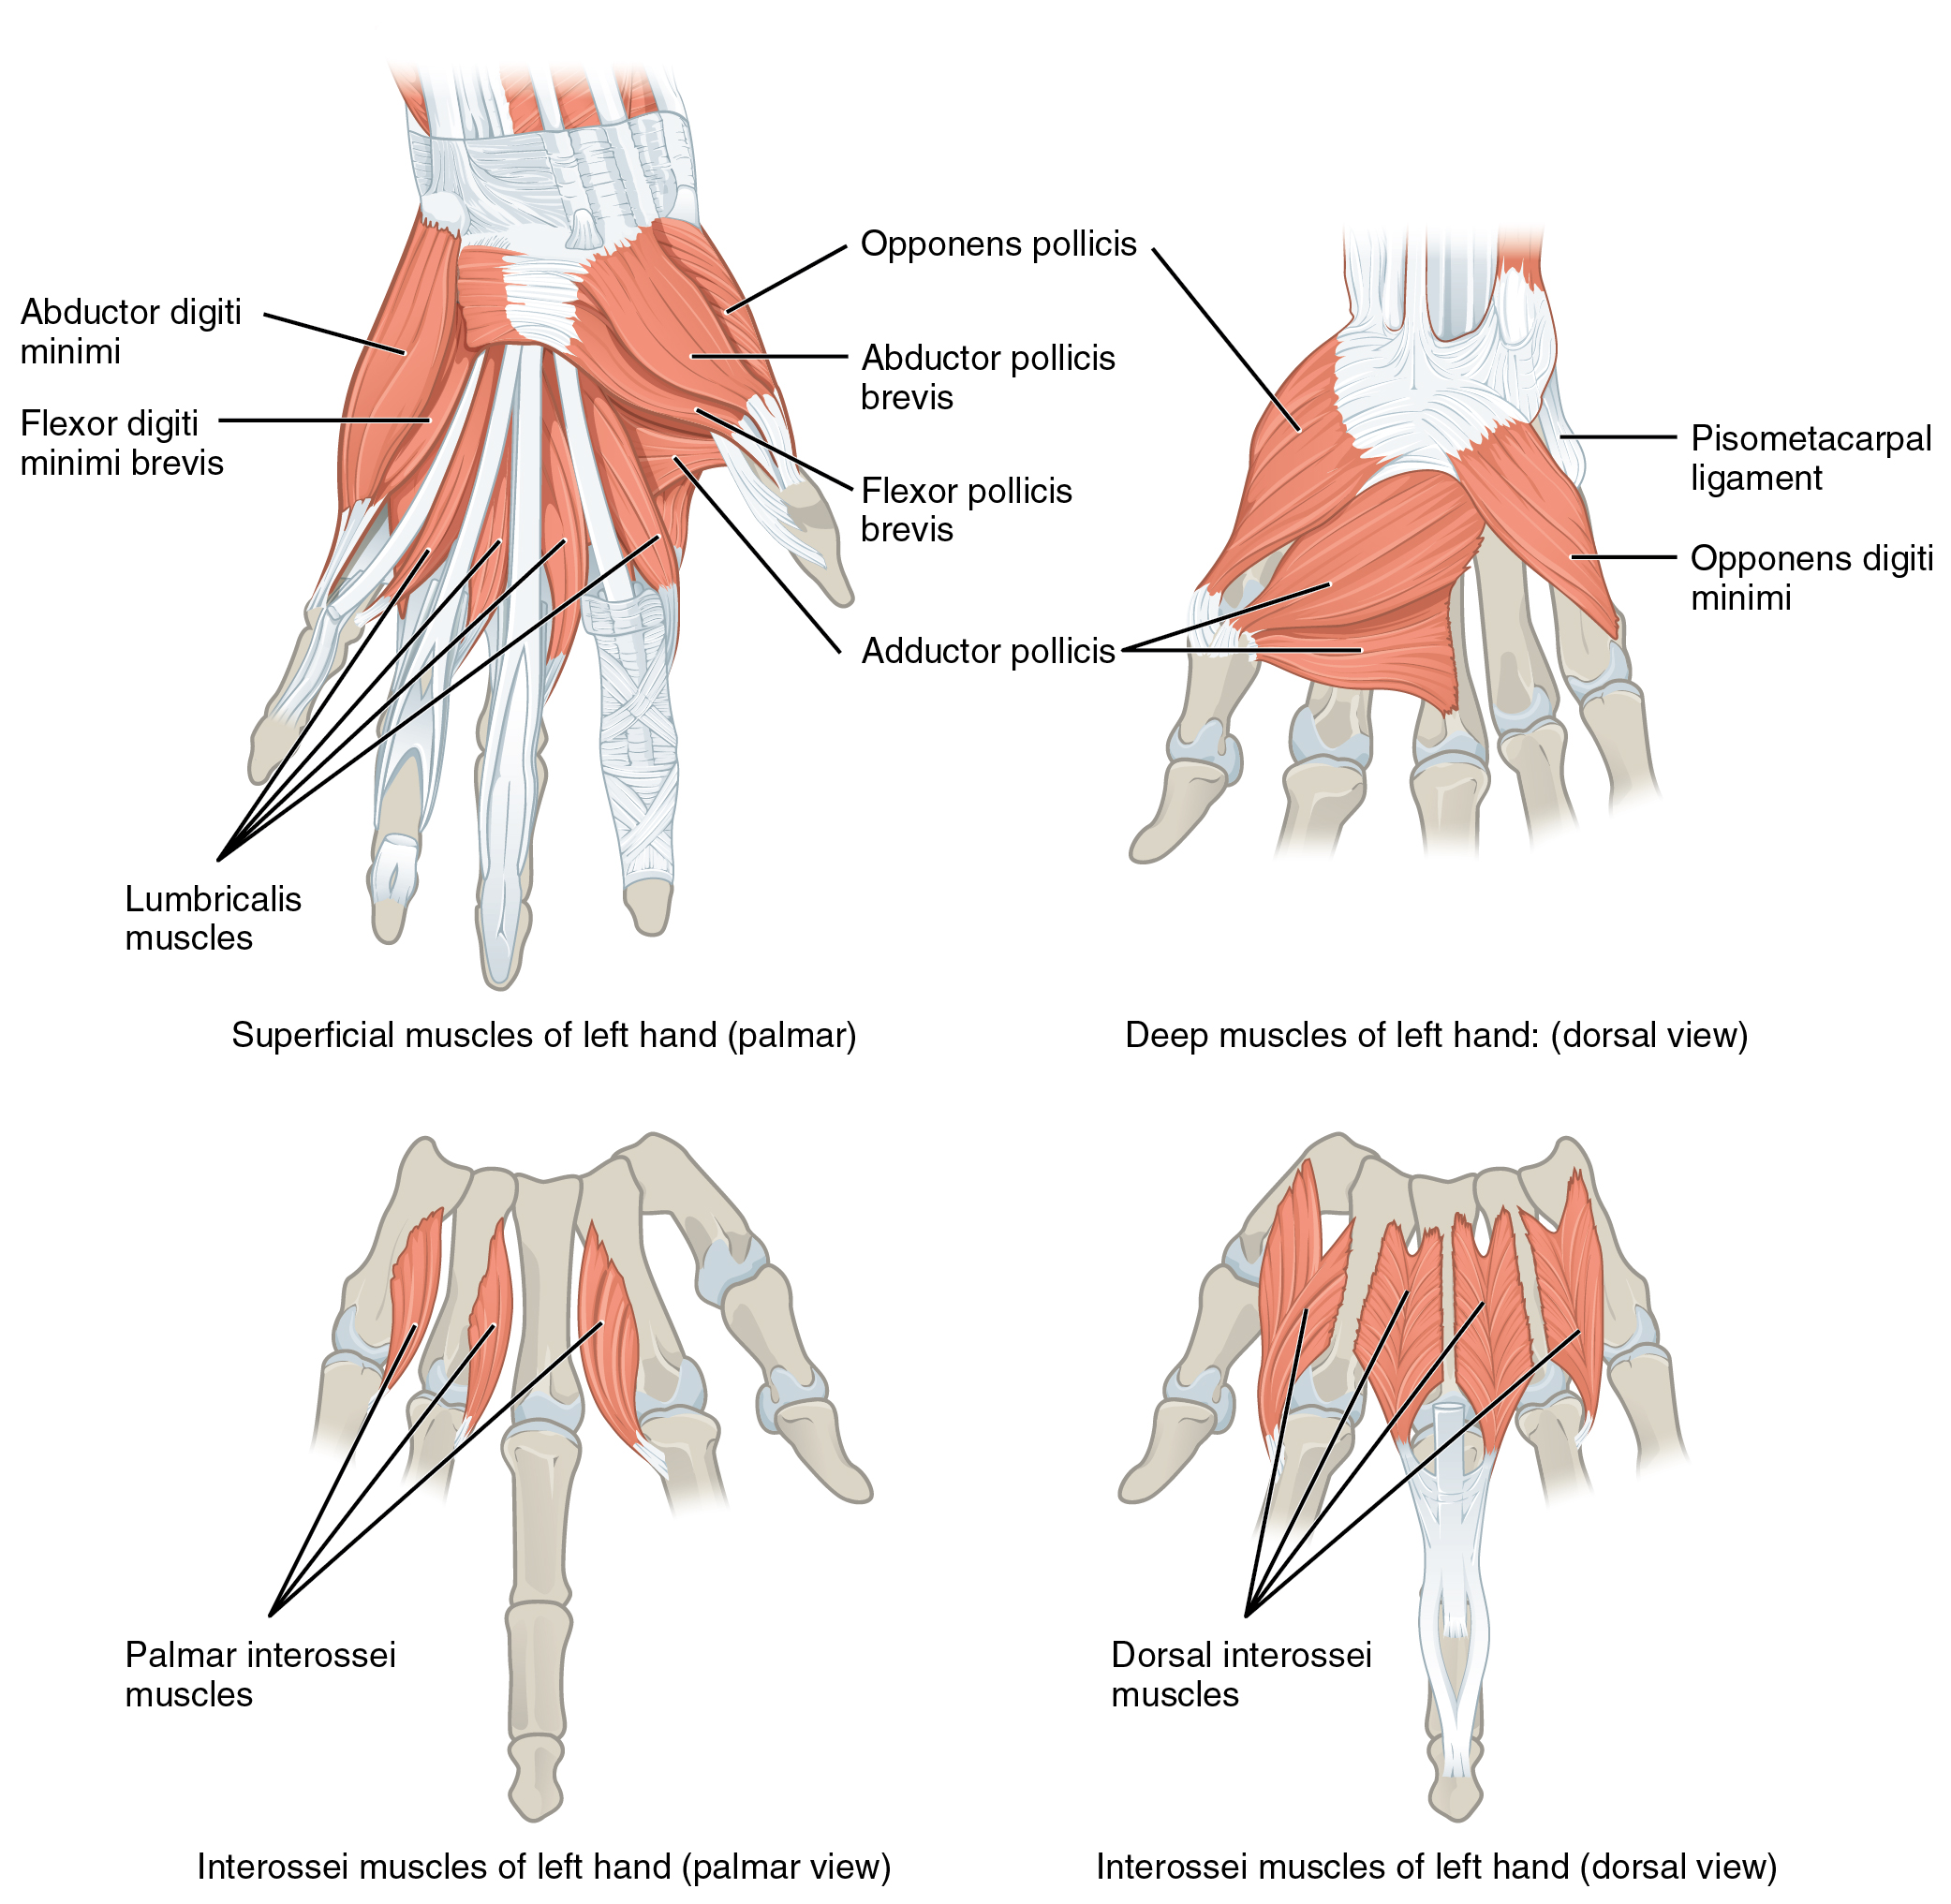 Muscles of the Thumb and Finger | Lecturio Online Medical Library